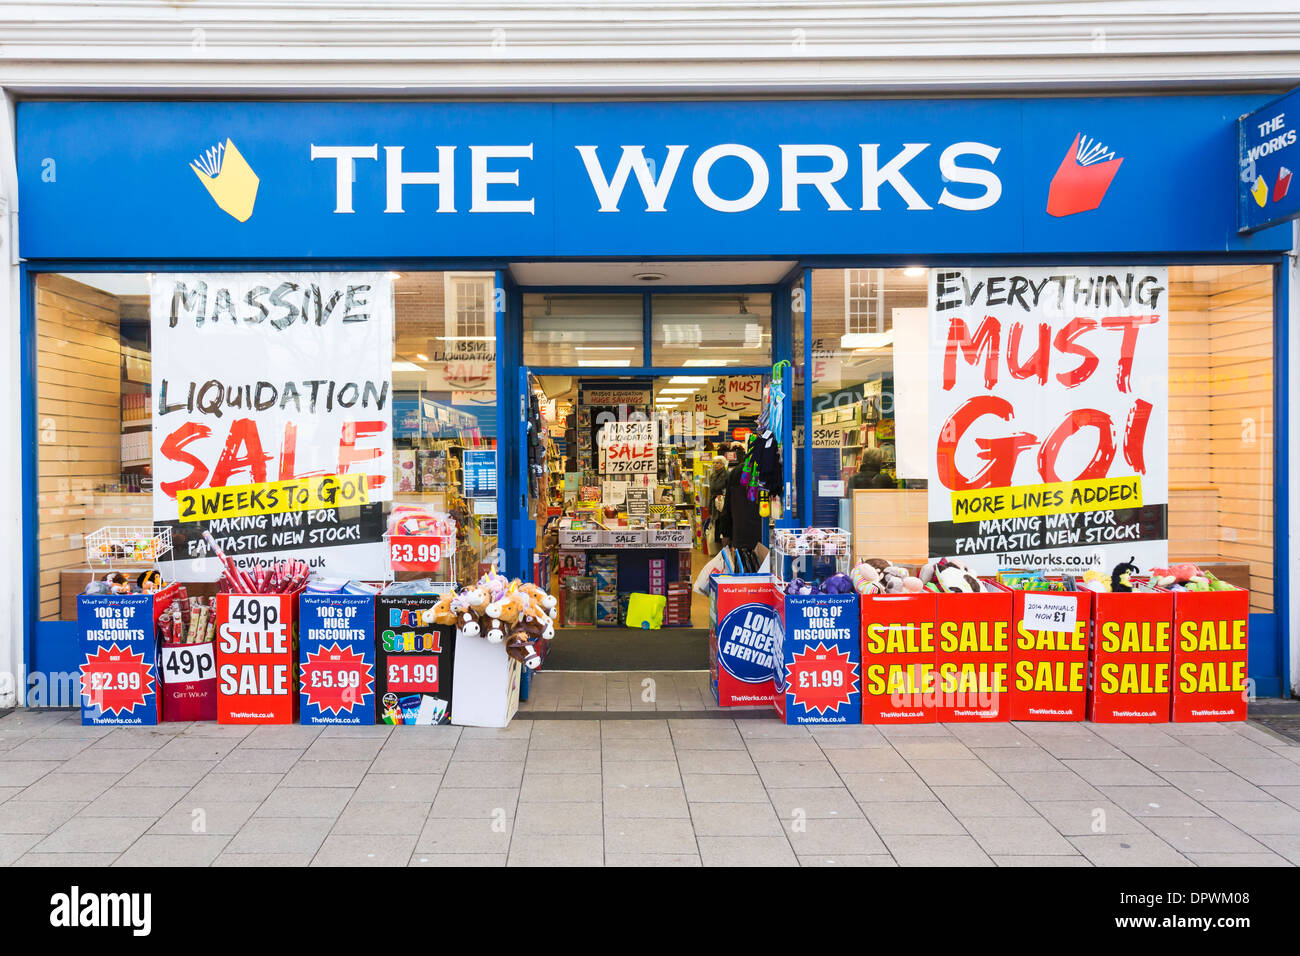 The Works Shop Front Liquidation Sale - Stock Image